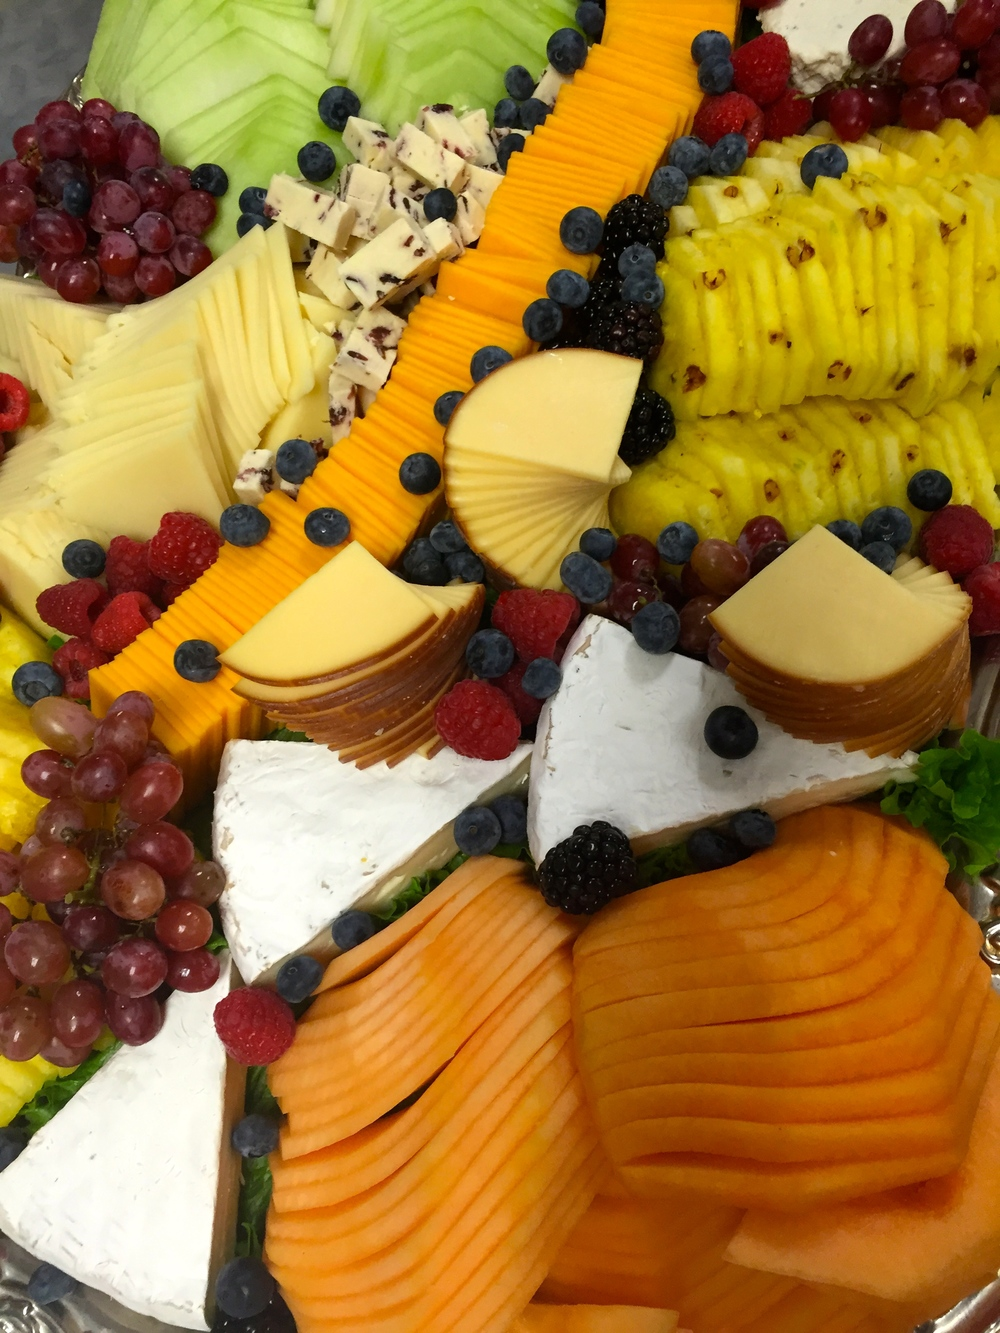 Europen Fruit & Cheese tray